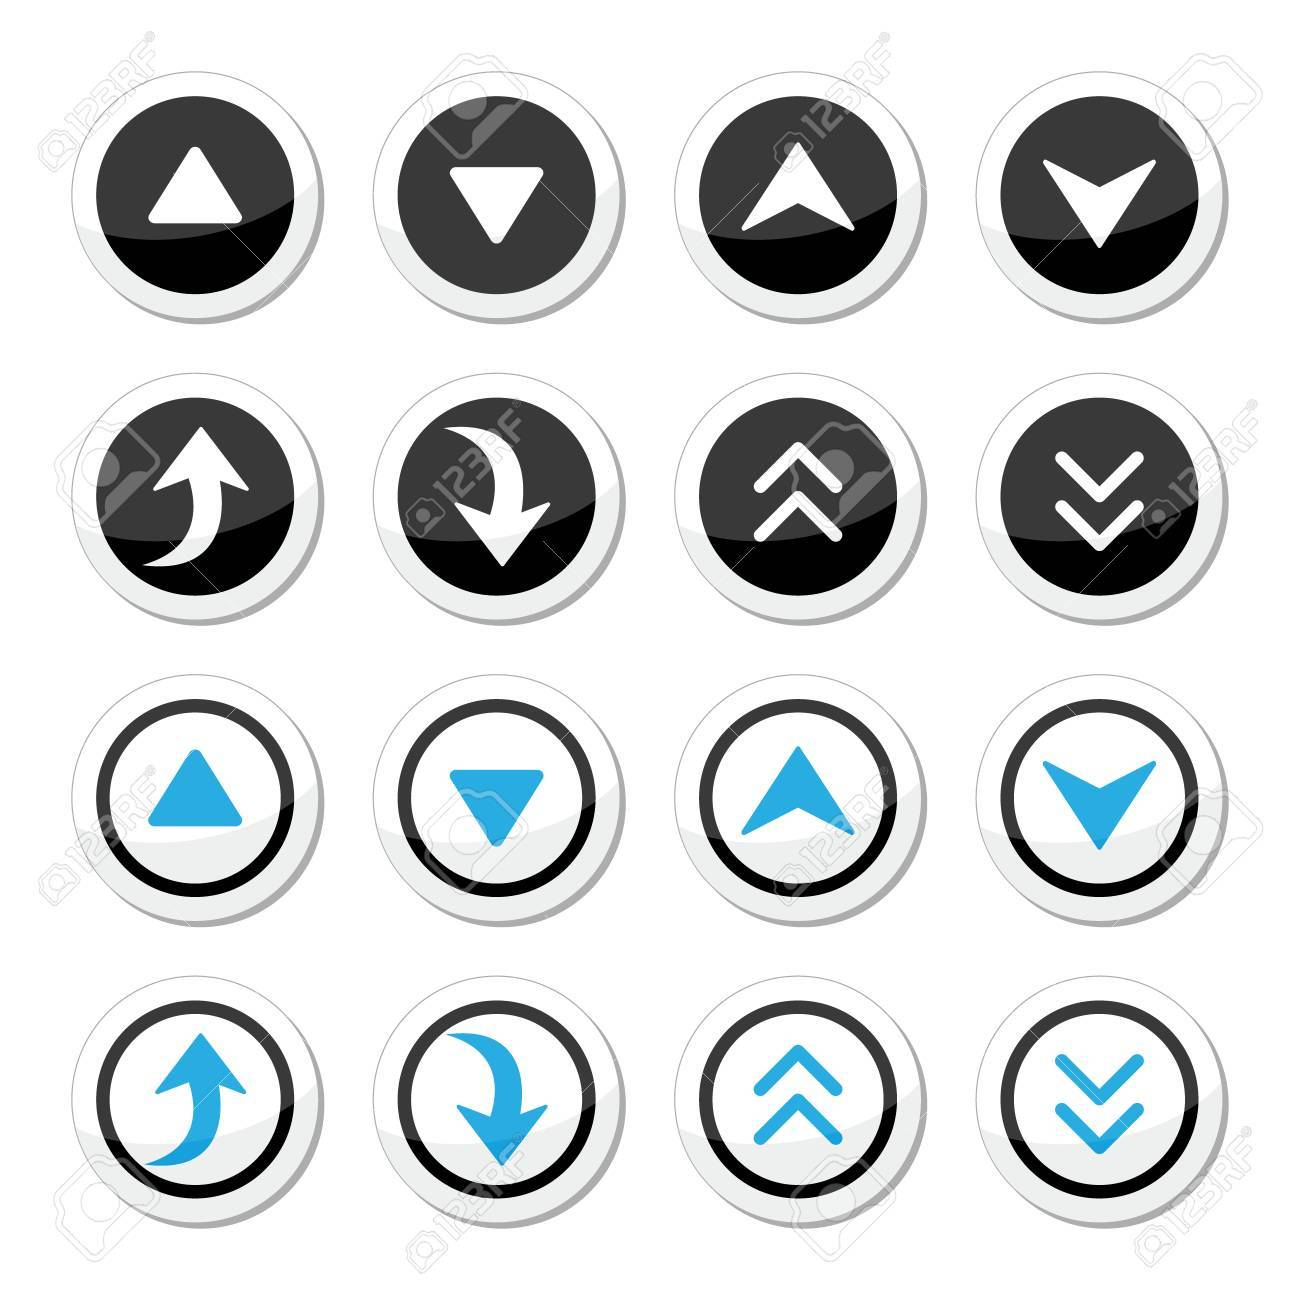 Up and down arrows round icons set Stock Vector - 23084419